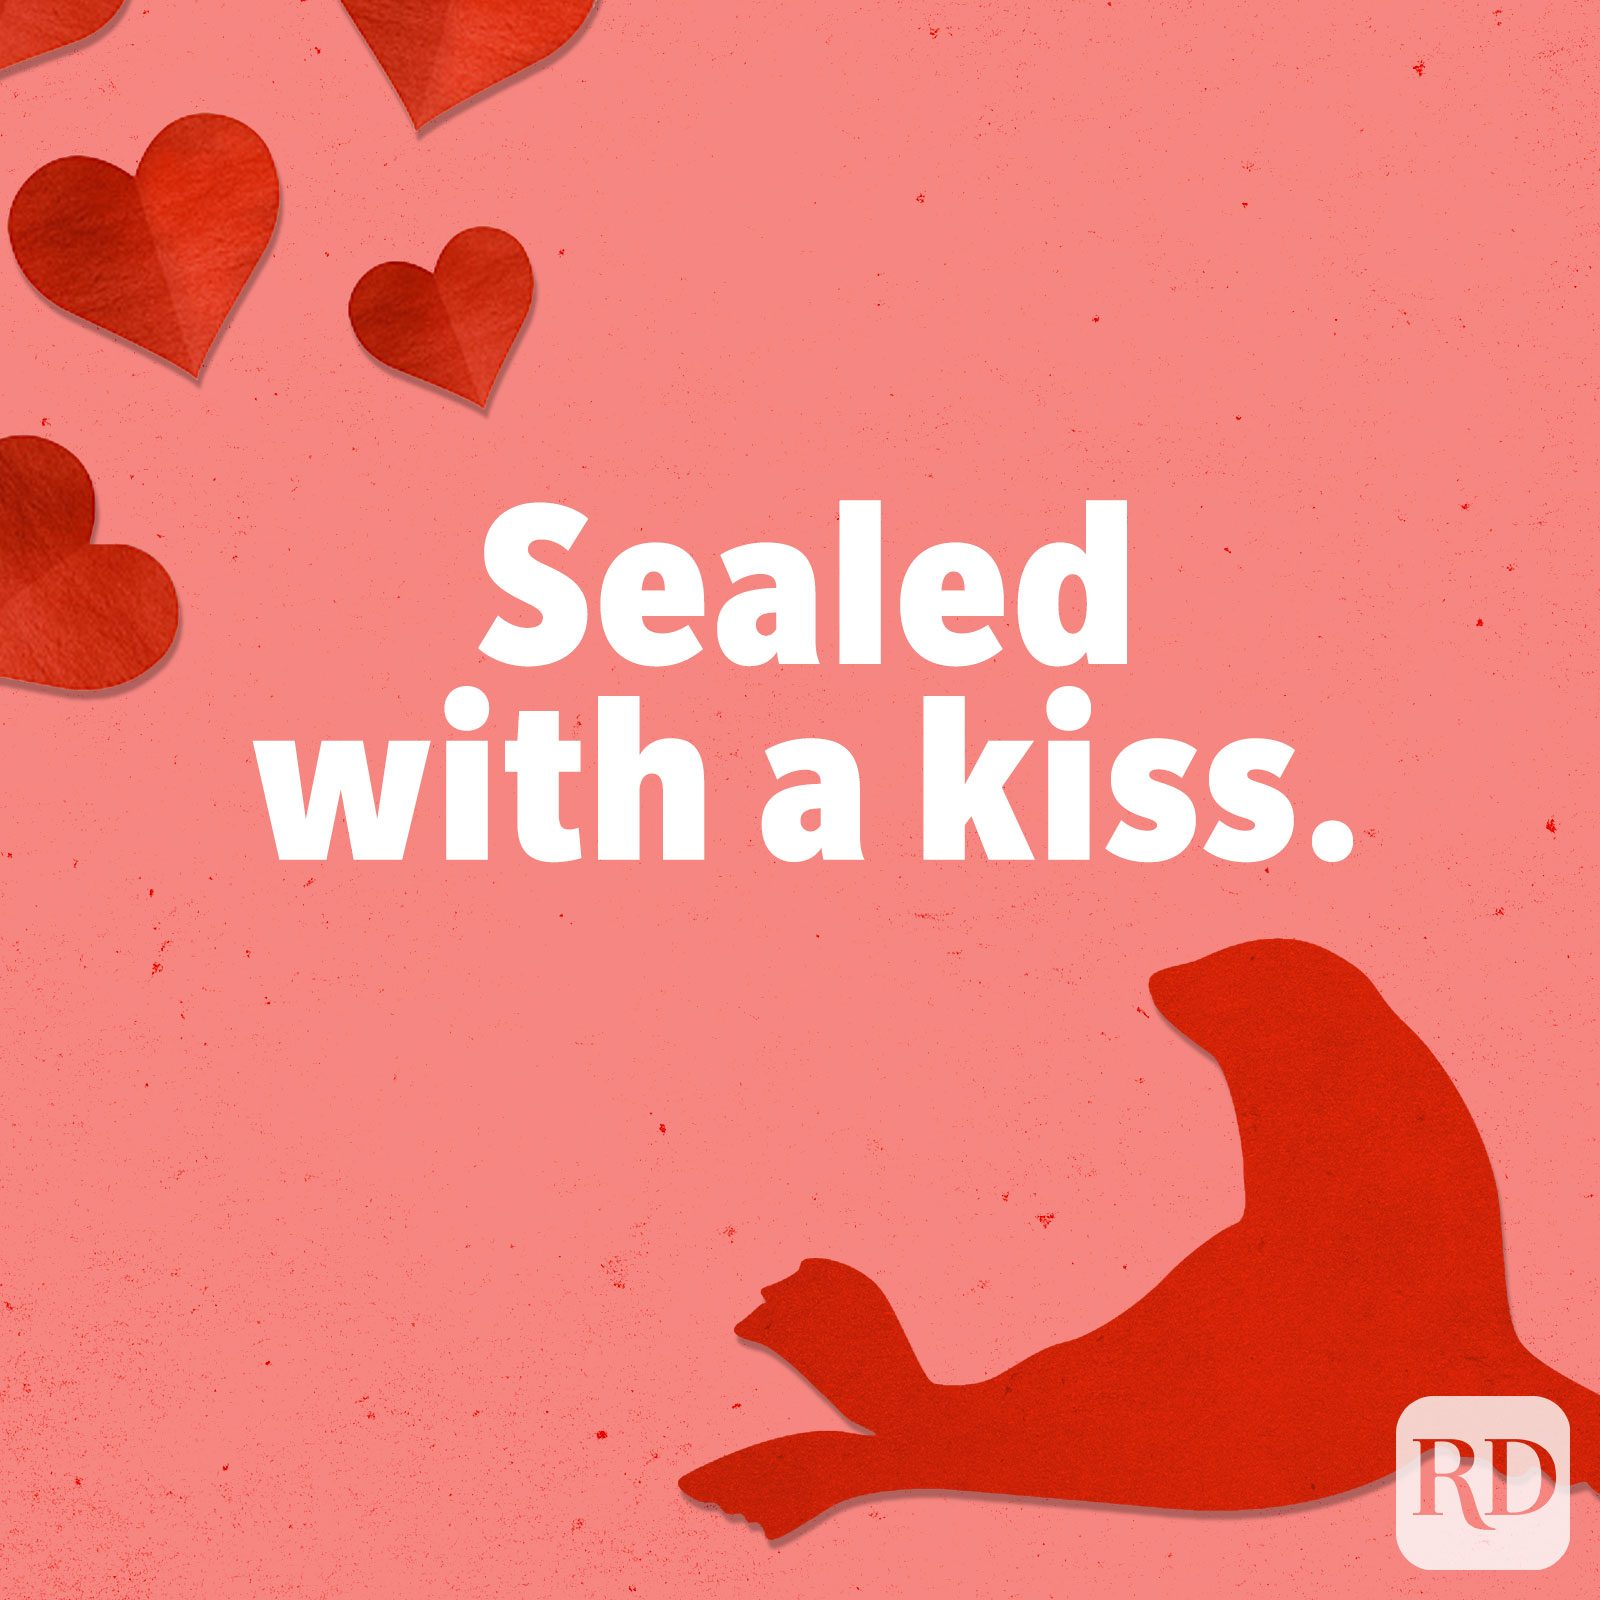 Seal-ed with a kiss.